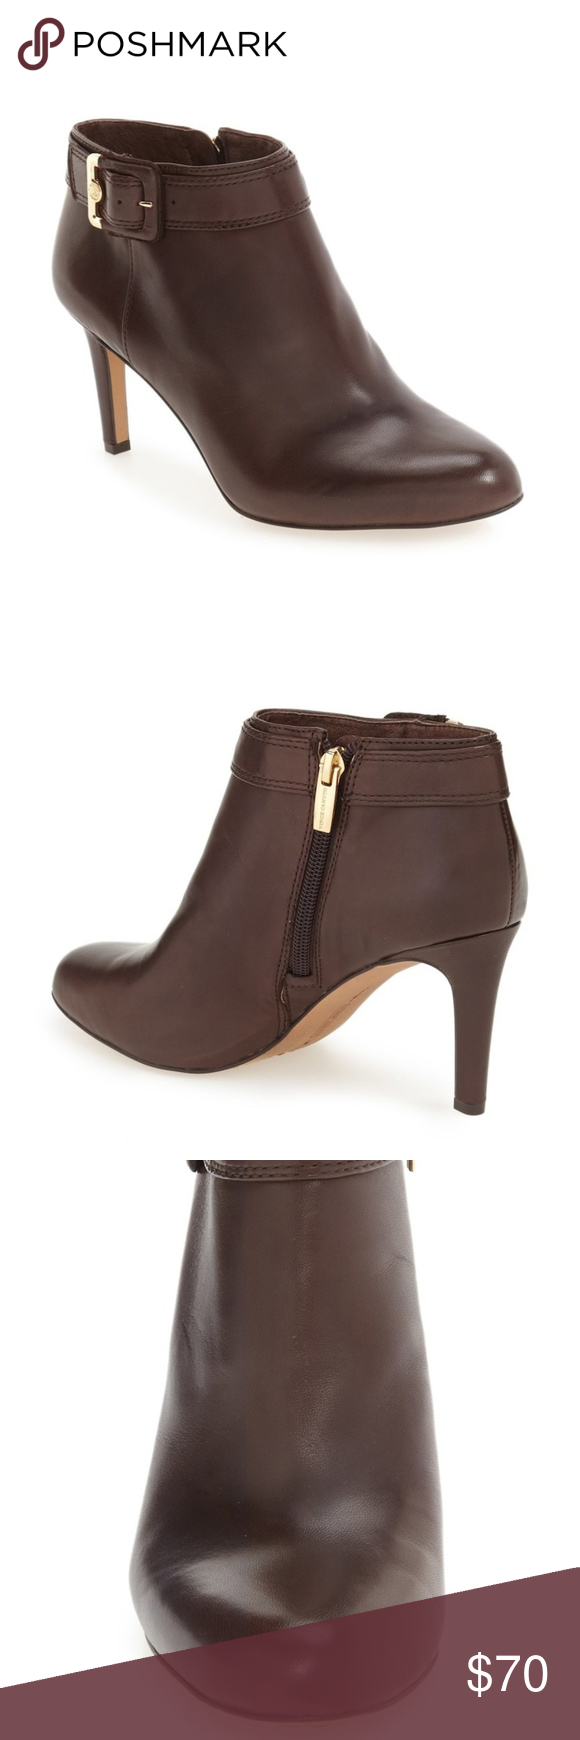 6c1bf9fe420 Vince Camuto Chrissa Brown Booties 5.5 In great condition